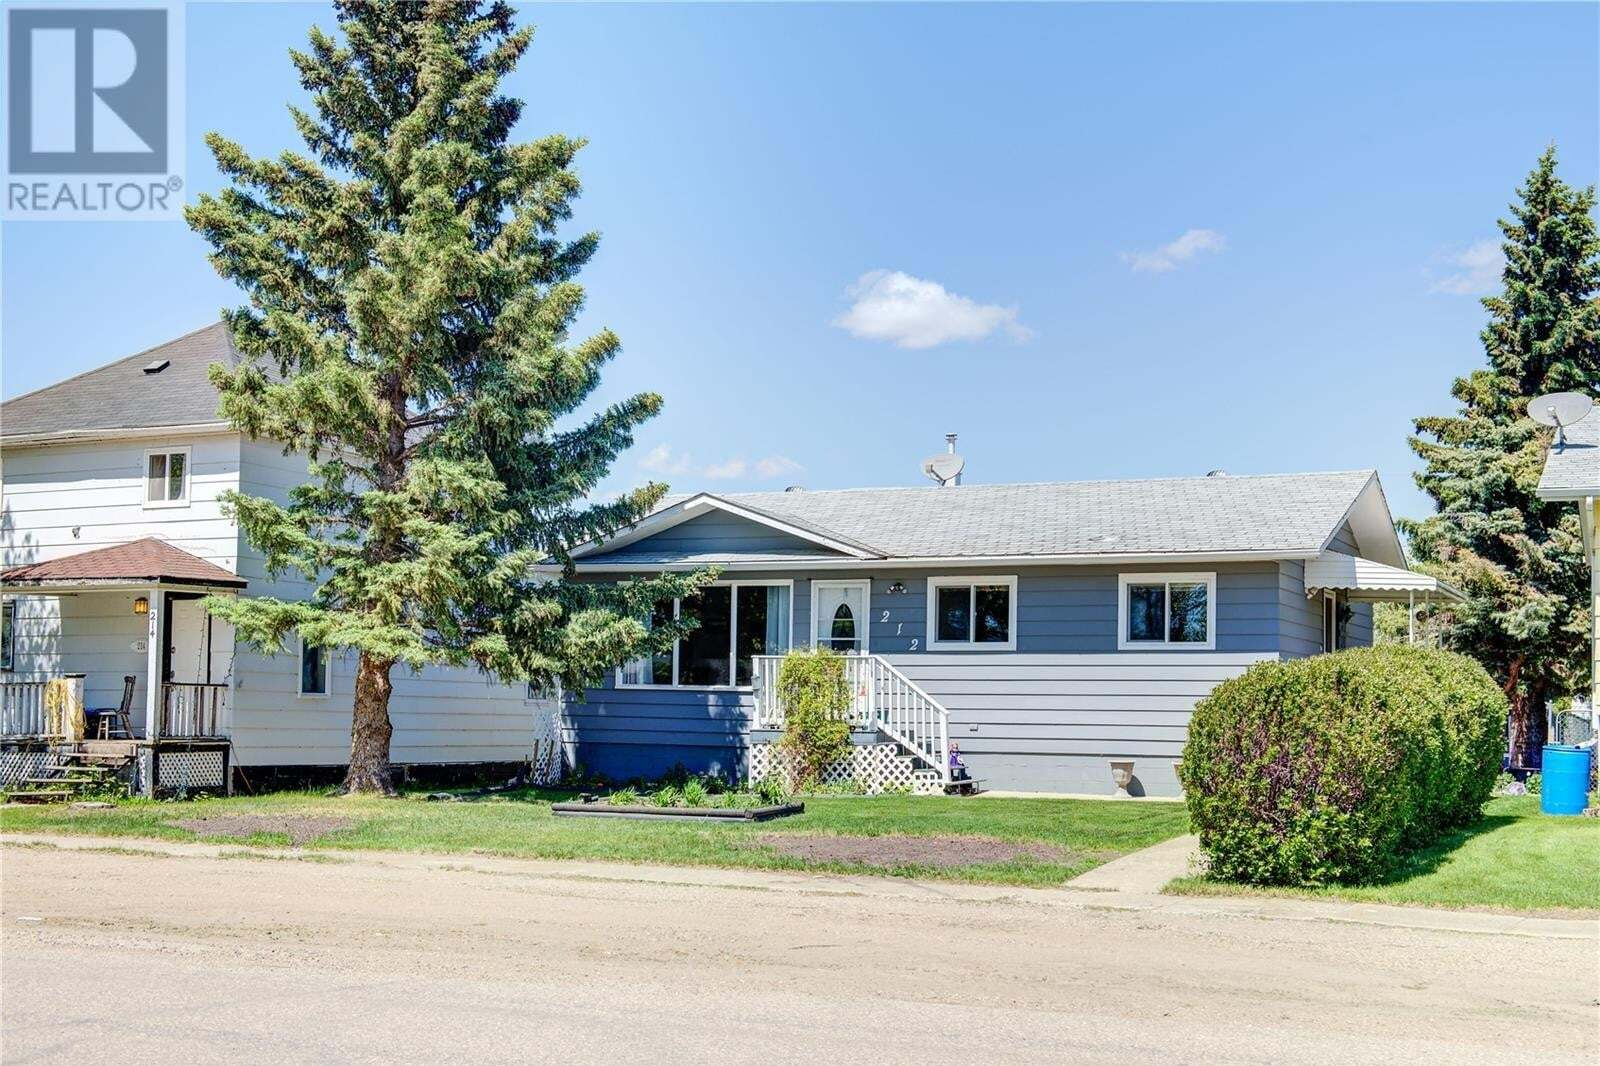 House for sale at 212 First St N Wakaw Saskatchewan - MLS: SK810563